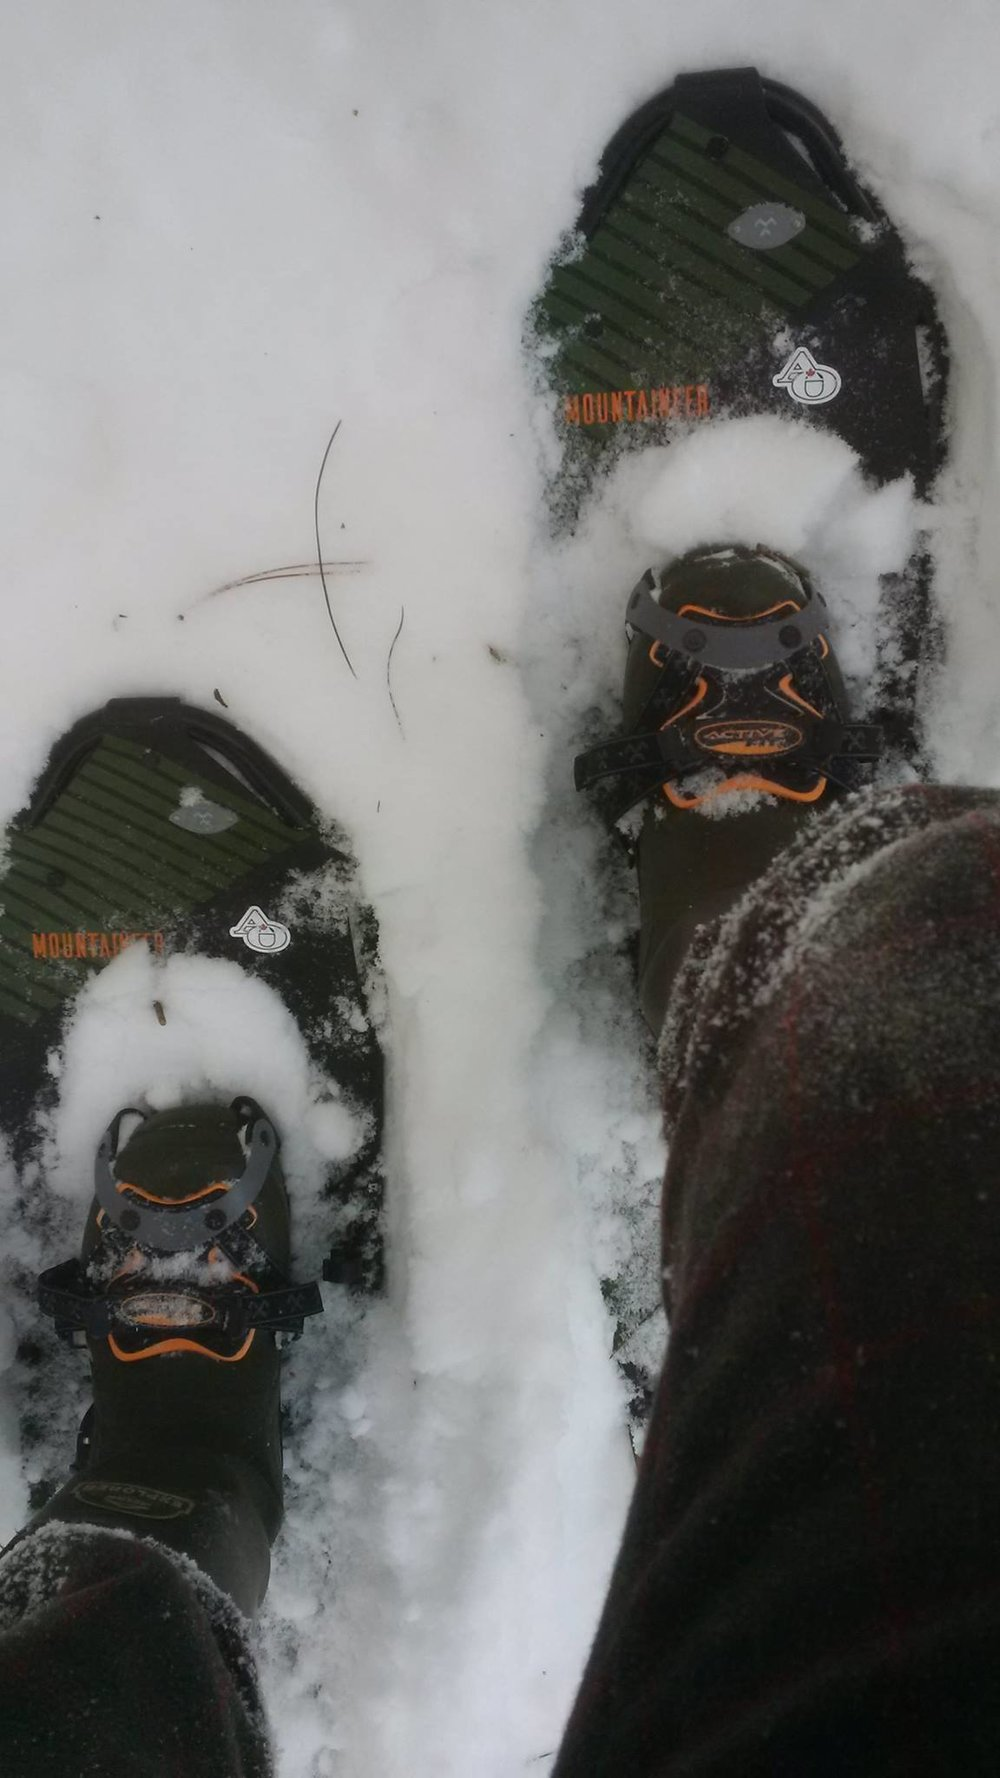 Getting incredible float on the Tubbs Mountaineer snowshoes! Cold, bright and beautiful day out there! #AlgonquinOutfitters @ TubbsSnowshoes